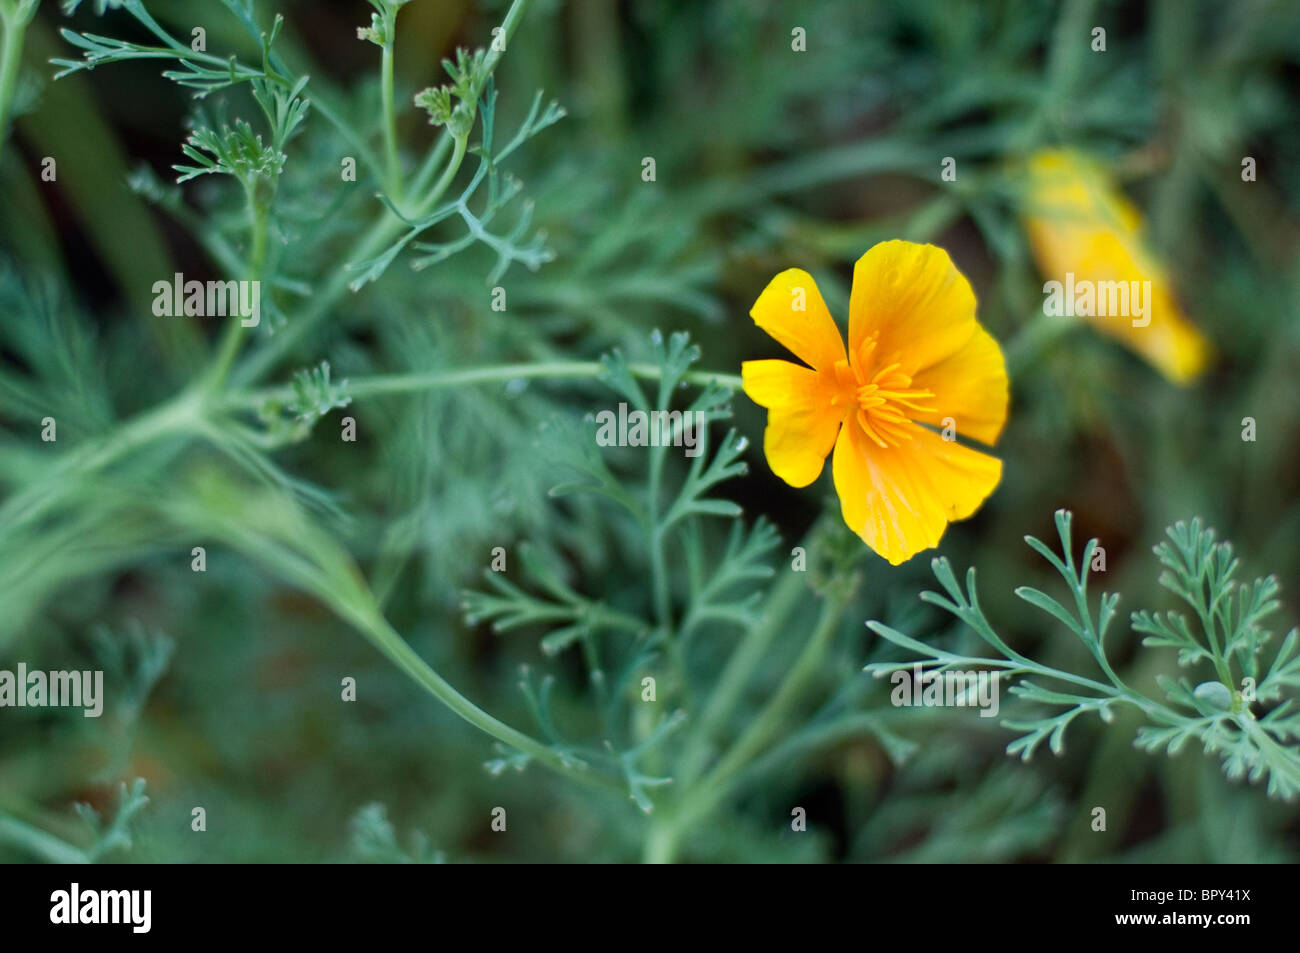 The orange blooms of a California Poppy plant. - Stock Image